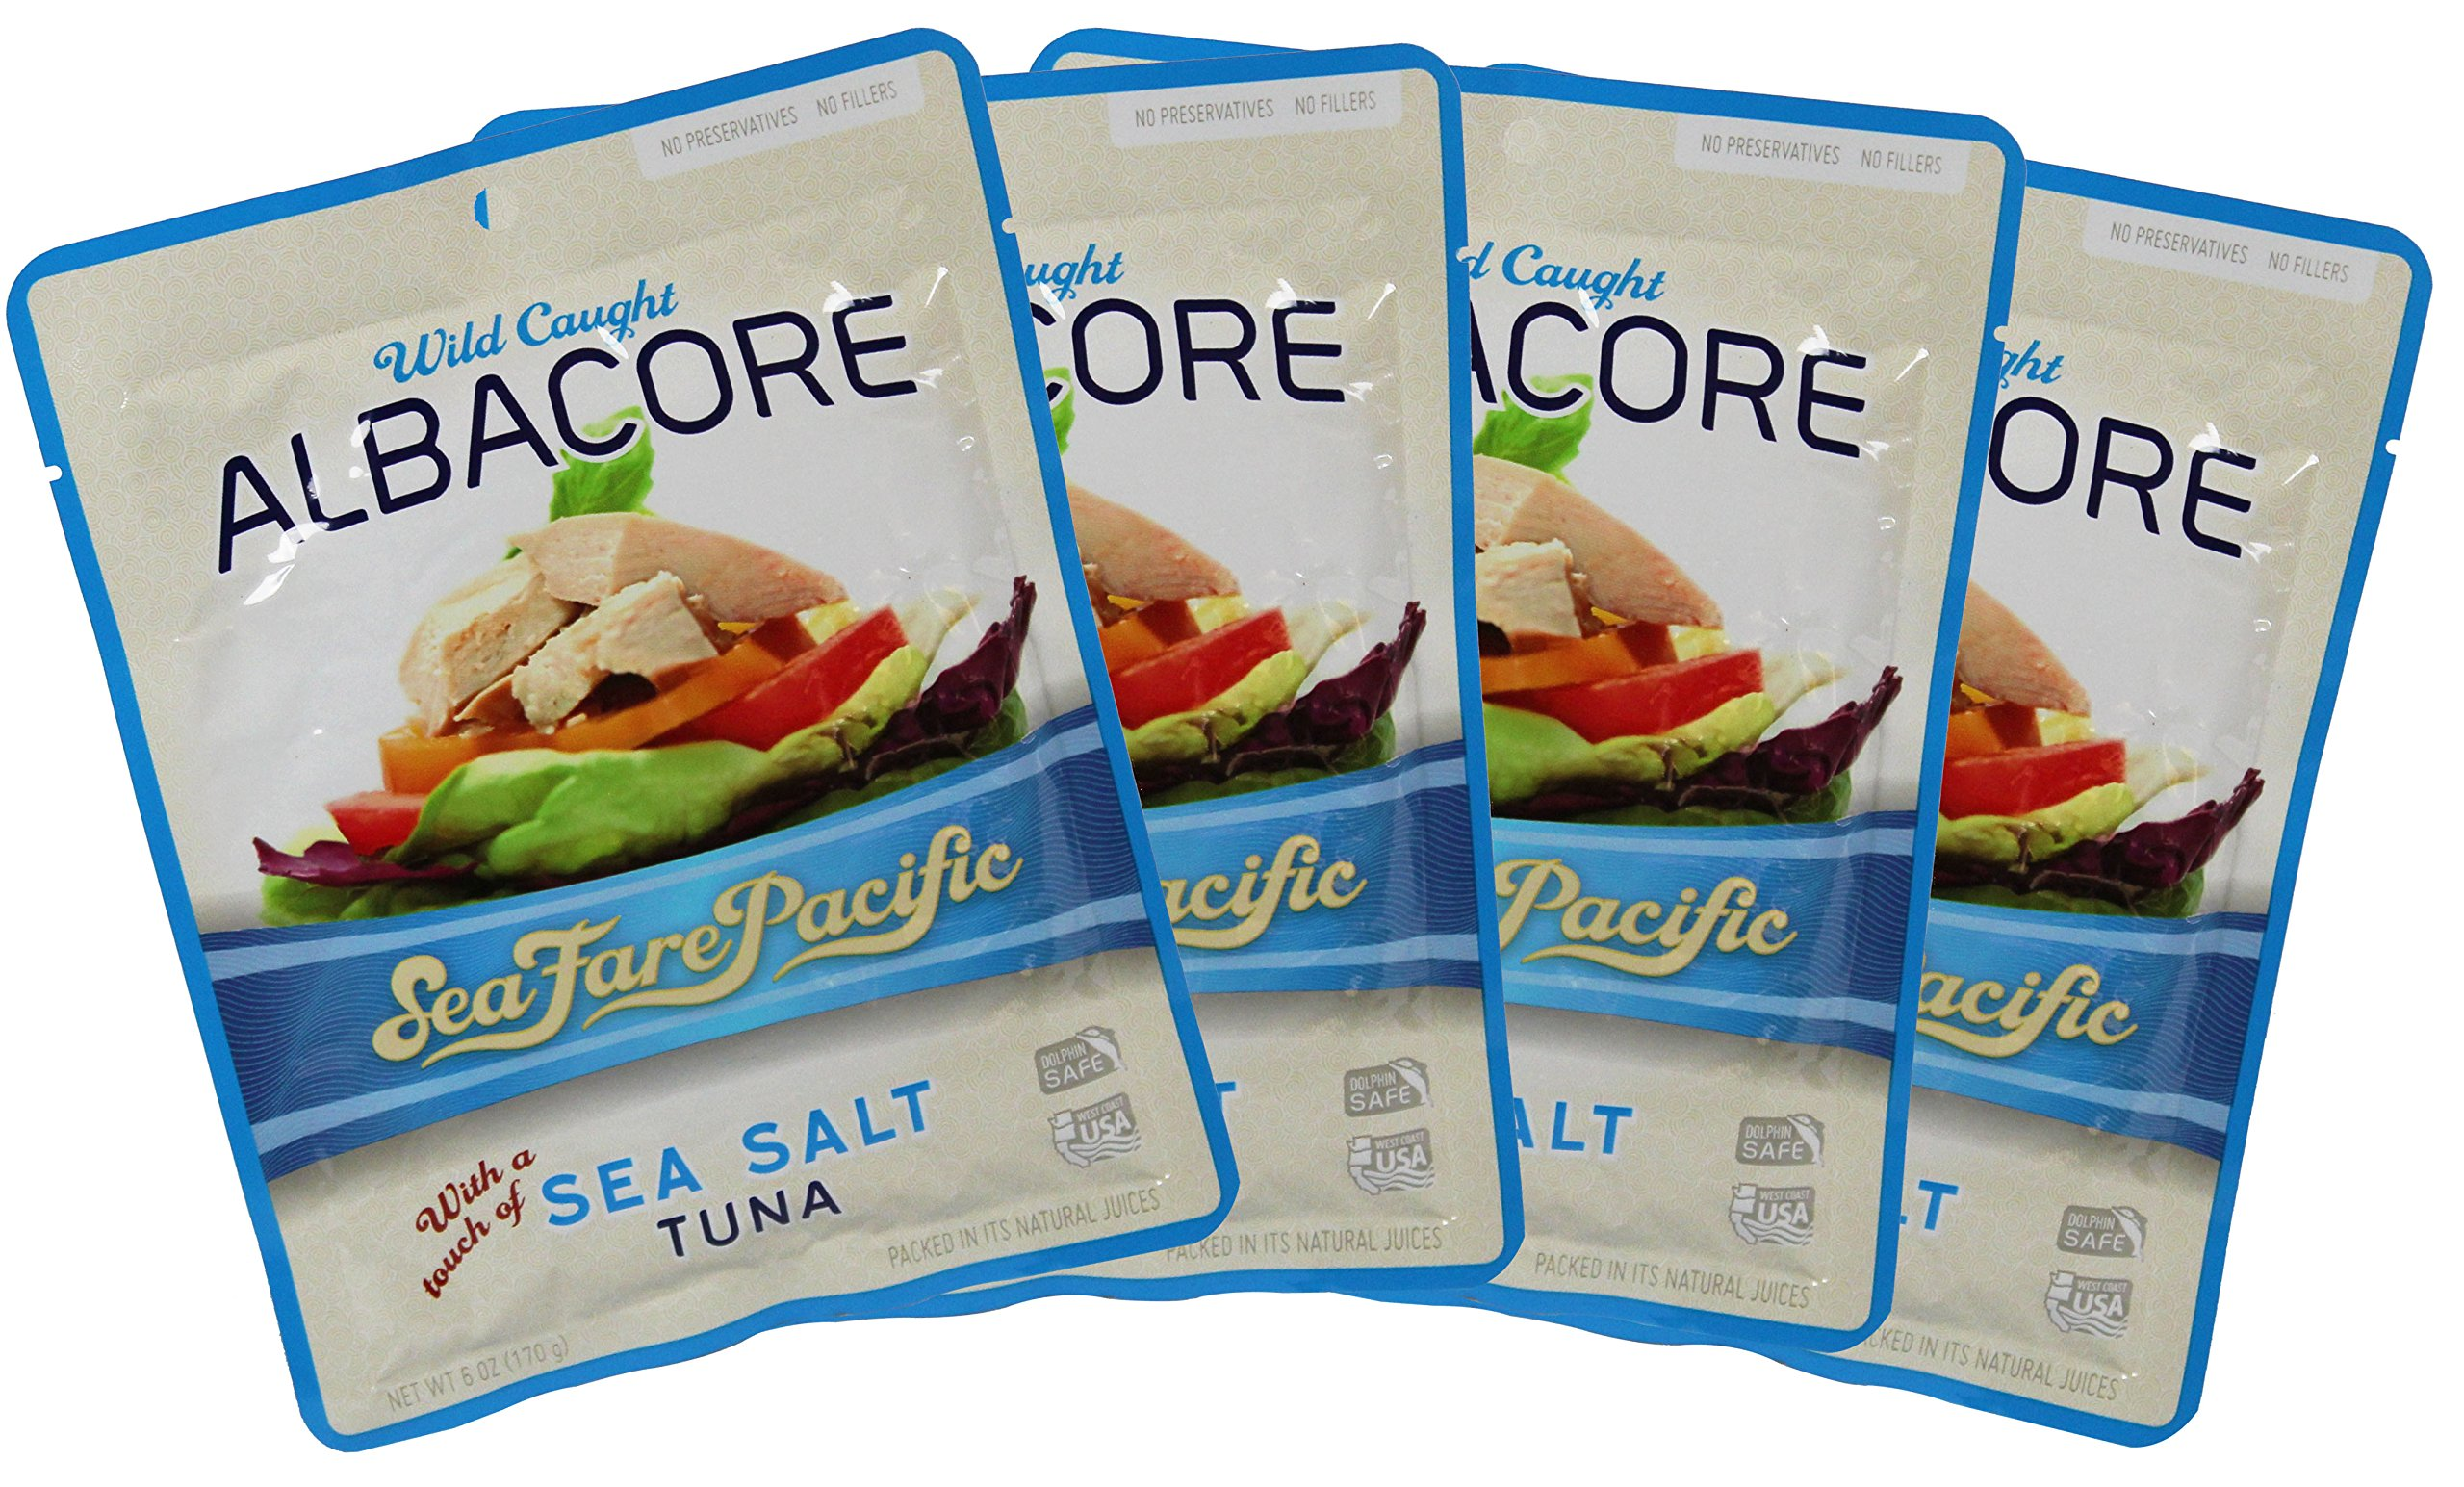 Sea Salt Albacore Tuna – Sea Fare Pacific, 4 Pack, wild caught sustainable, 100% traceable to USA family owned fishing boats, pole & line, once cooked in it's own natural fish oil excellent Omega3's.